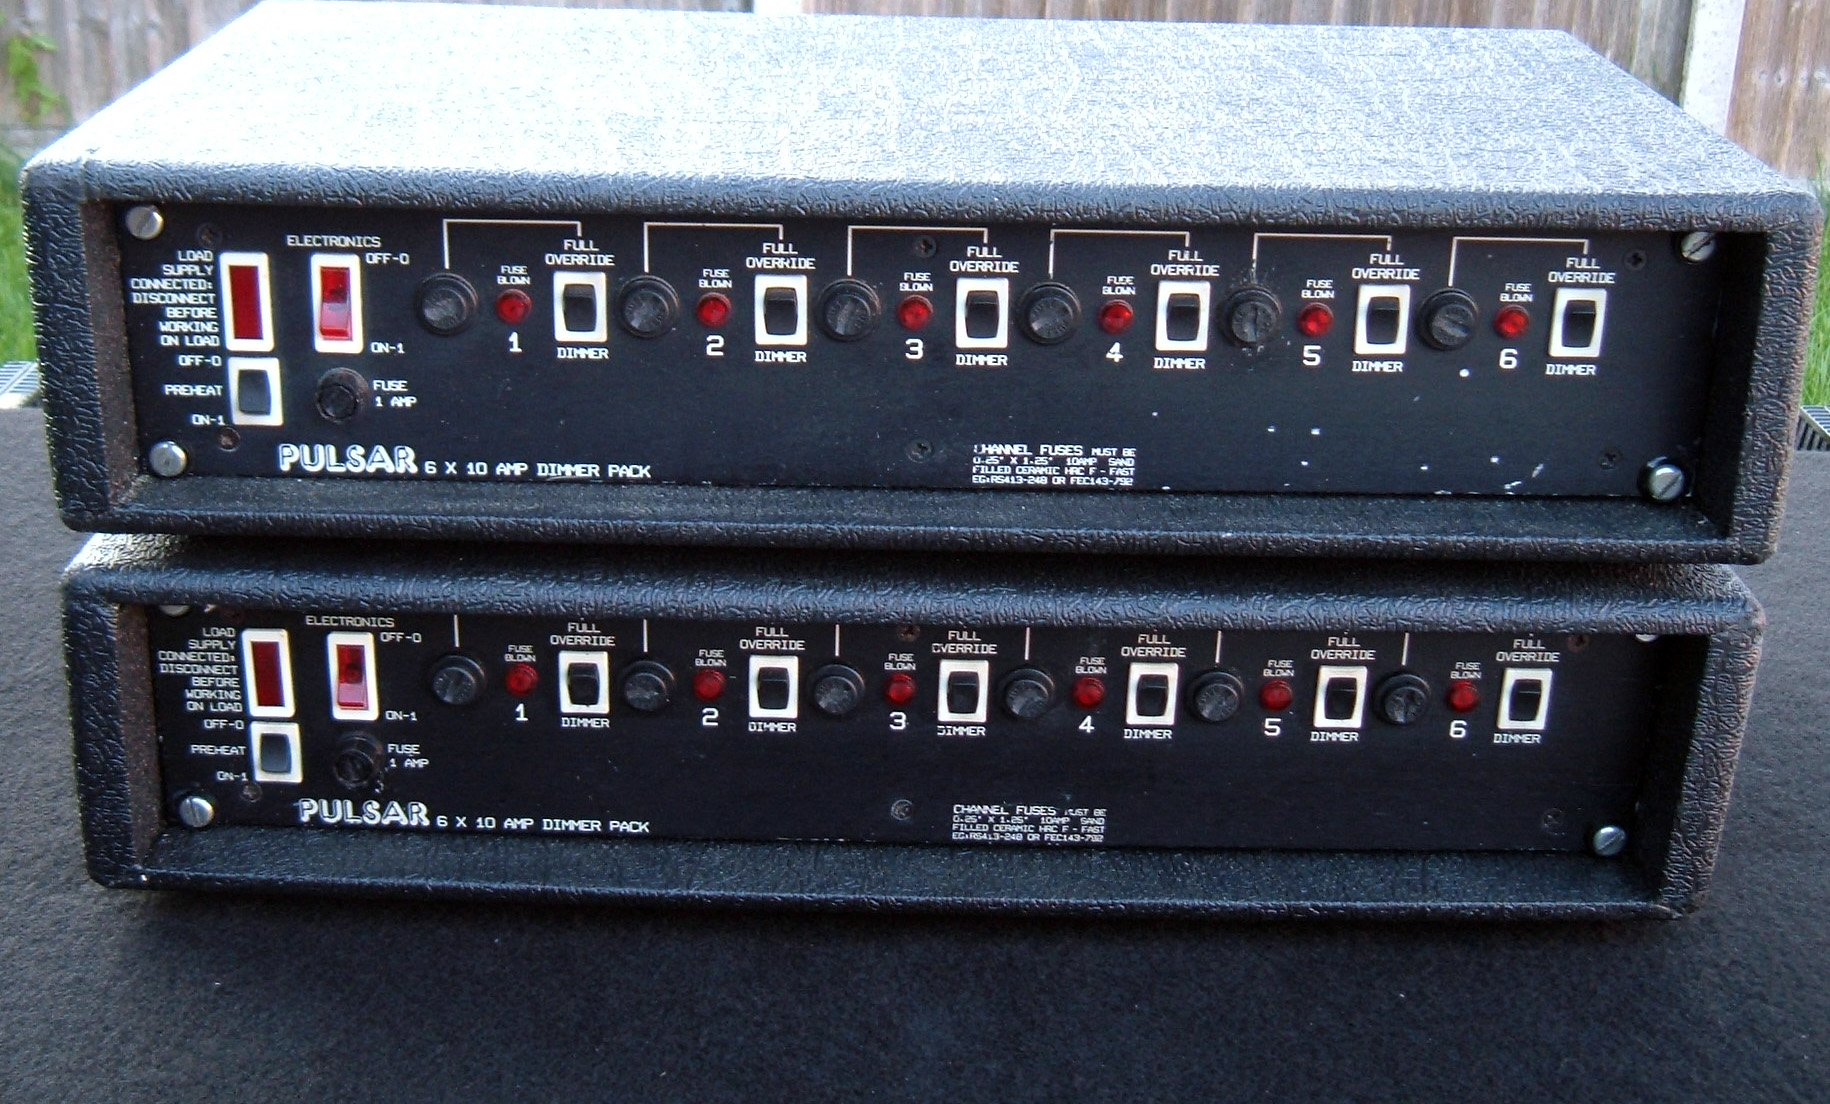 2of Pulsar 6x10A Dimmer Packs